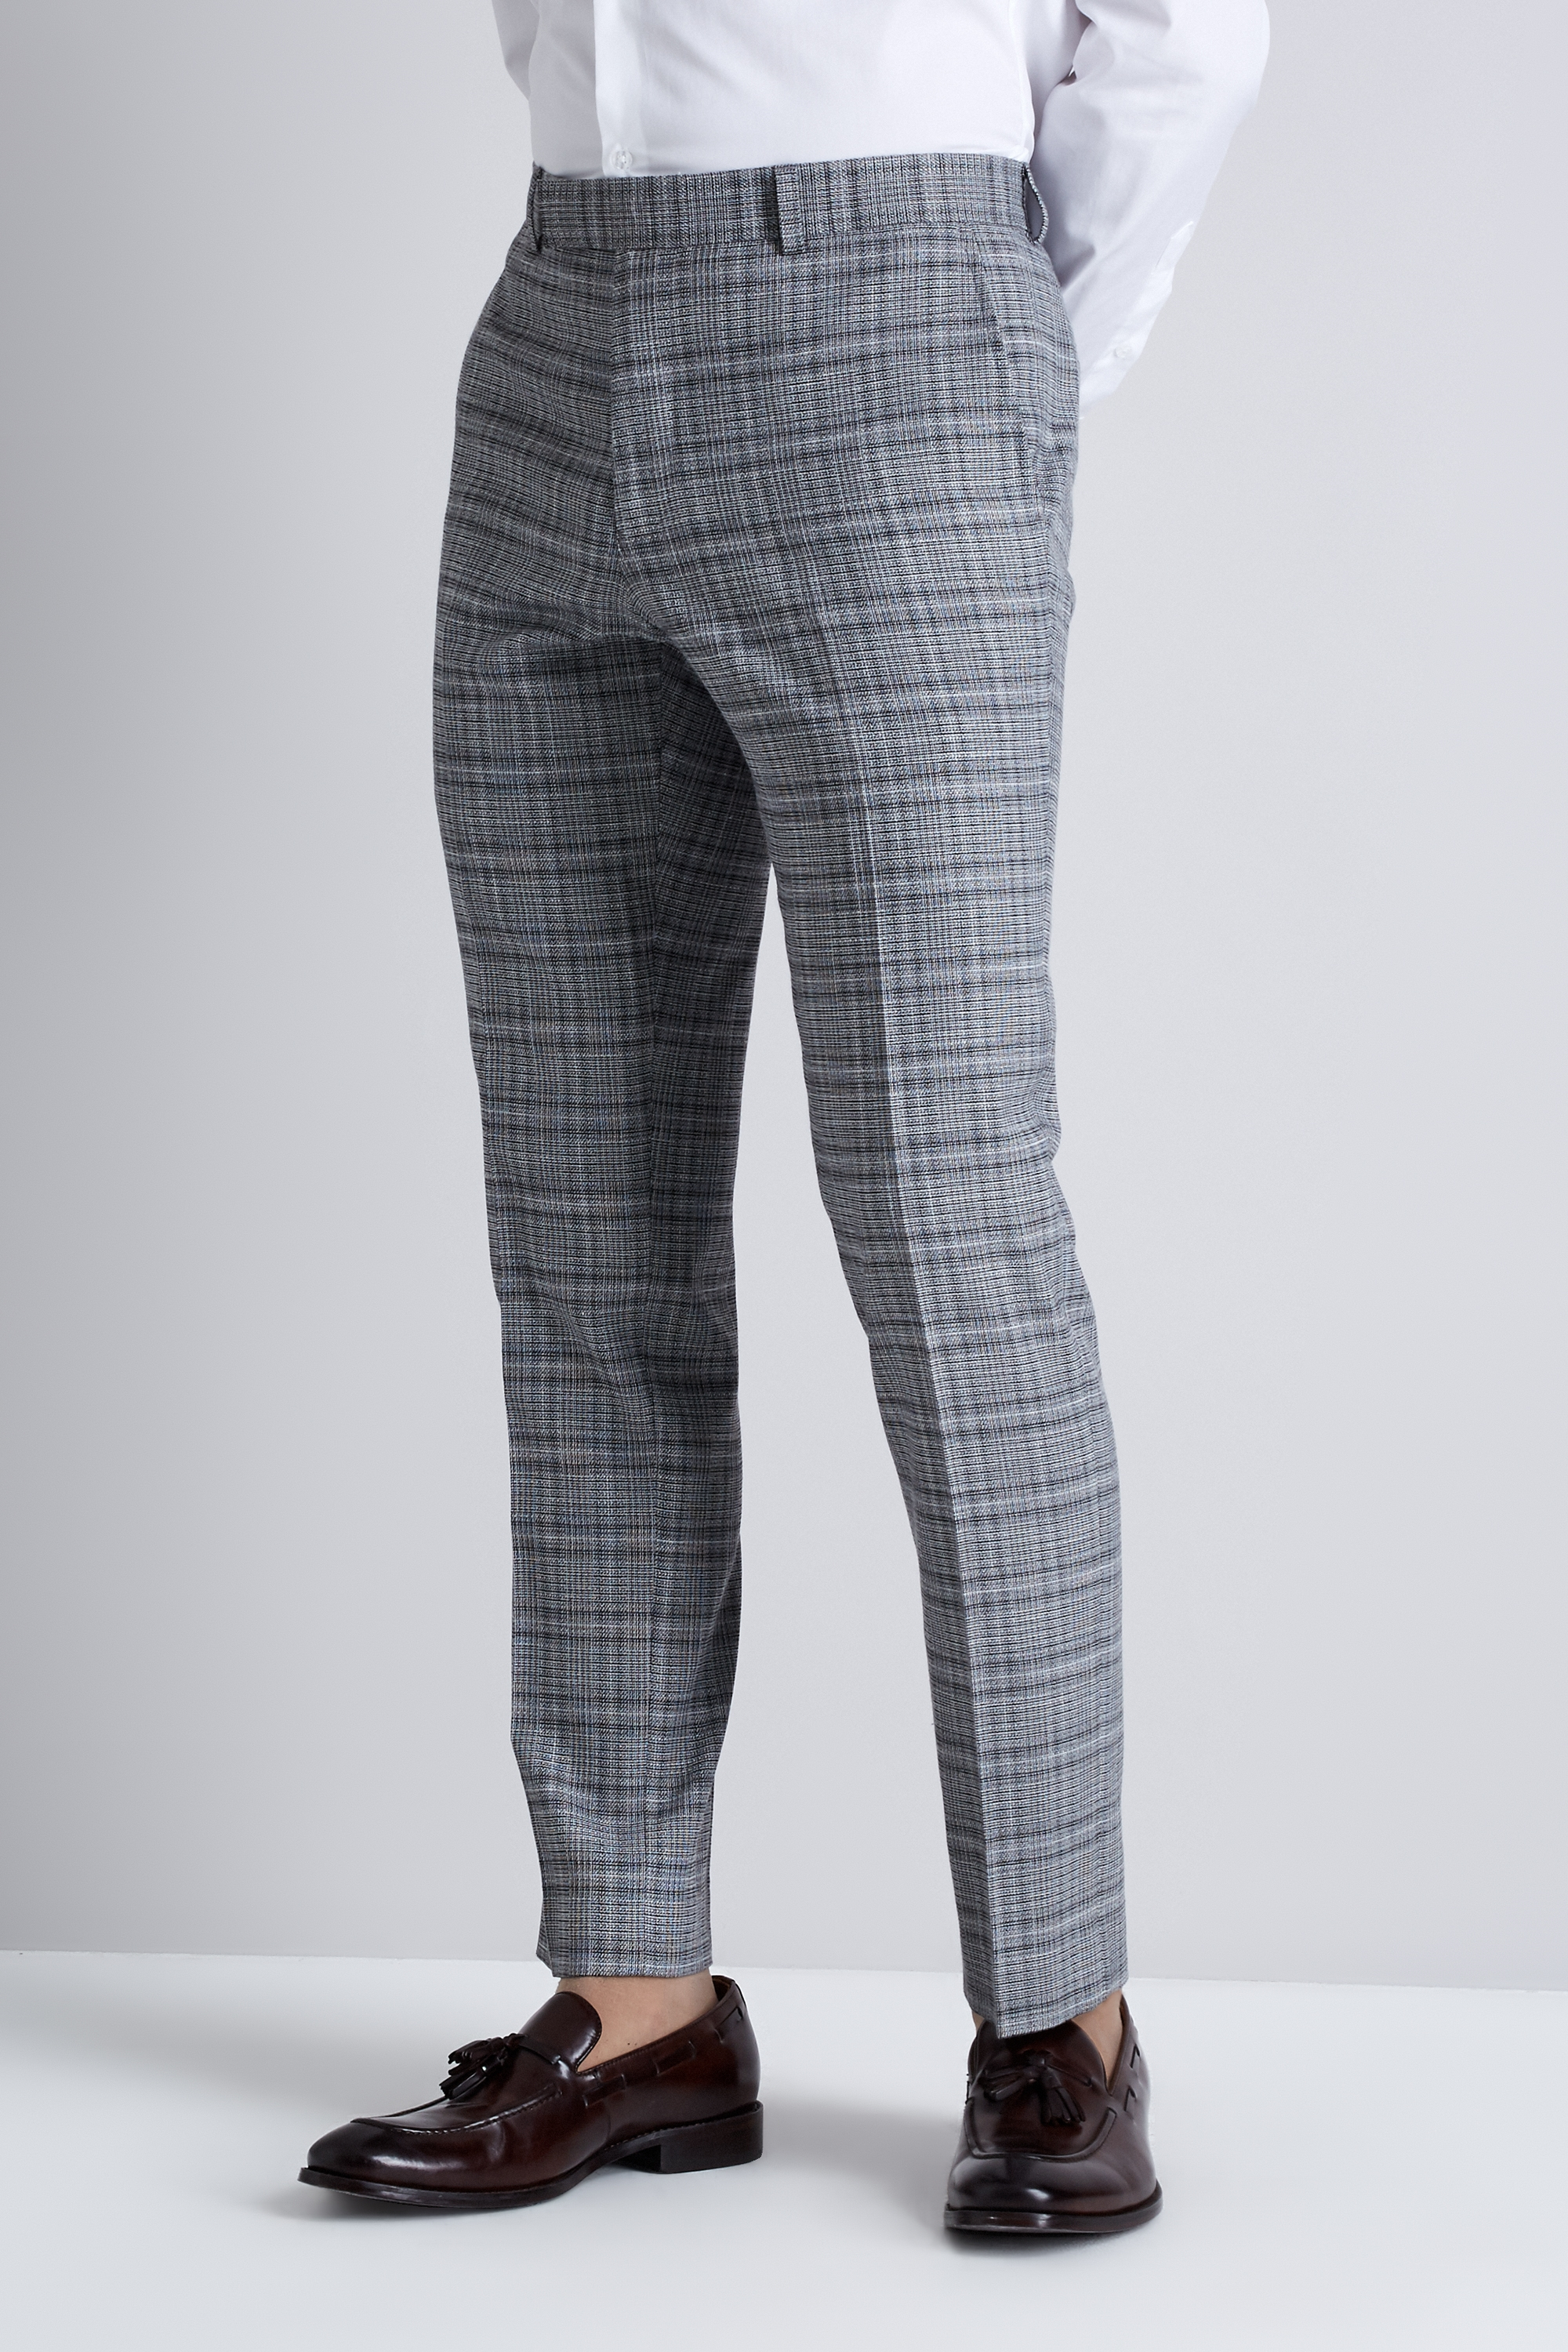 Moss London Mens Suit Trousers Skinny Fit Black And White Twist Check Pants | EBay